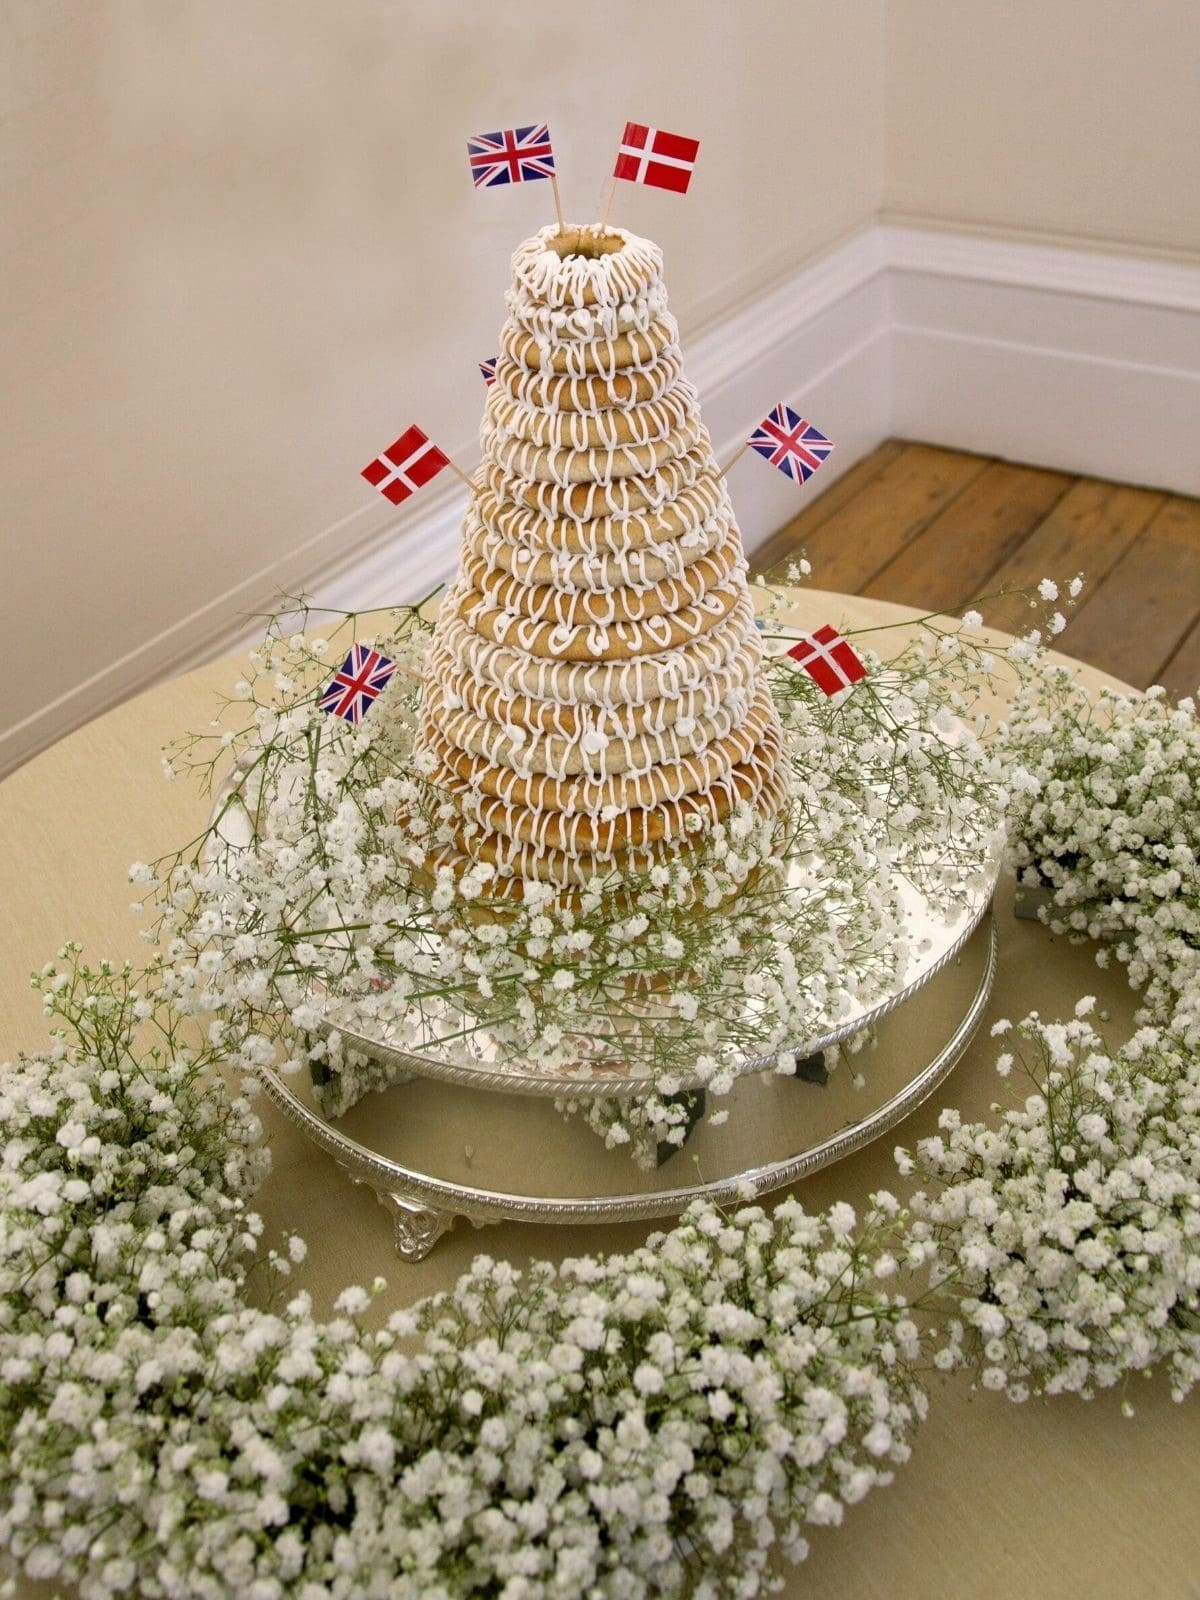 Danish Kransekage tower - marzipan wreath cake or ring cake - a recipe for a classic Danish cake.  Use it for weddings, Christmas, New Year, or any party that needs a fancy cake. Find recipes and inspiration @ danishthings.com Photo © Christina F. I. #DanishThings #kransekage # marzipanwreathcake #ringcake #Danish #tradition #weddingcake #NewYear #christmas #cake #party #classic #festive #tower